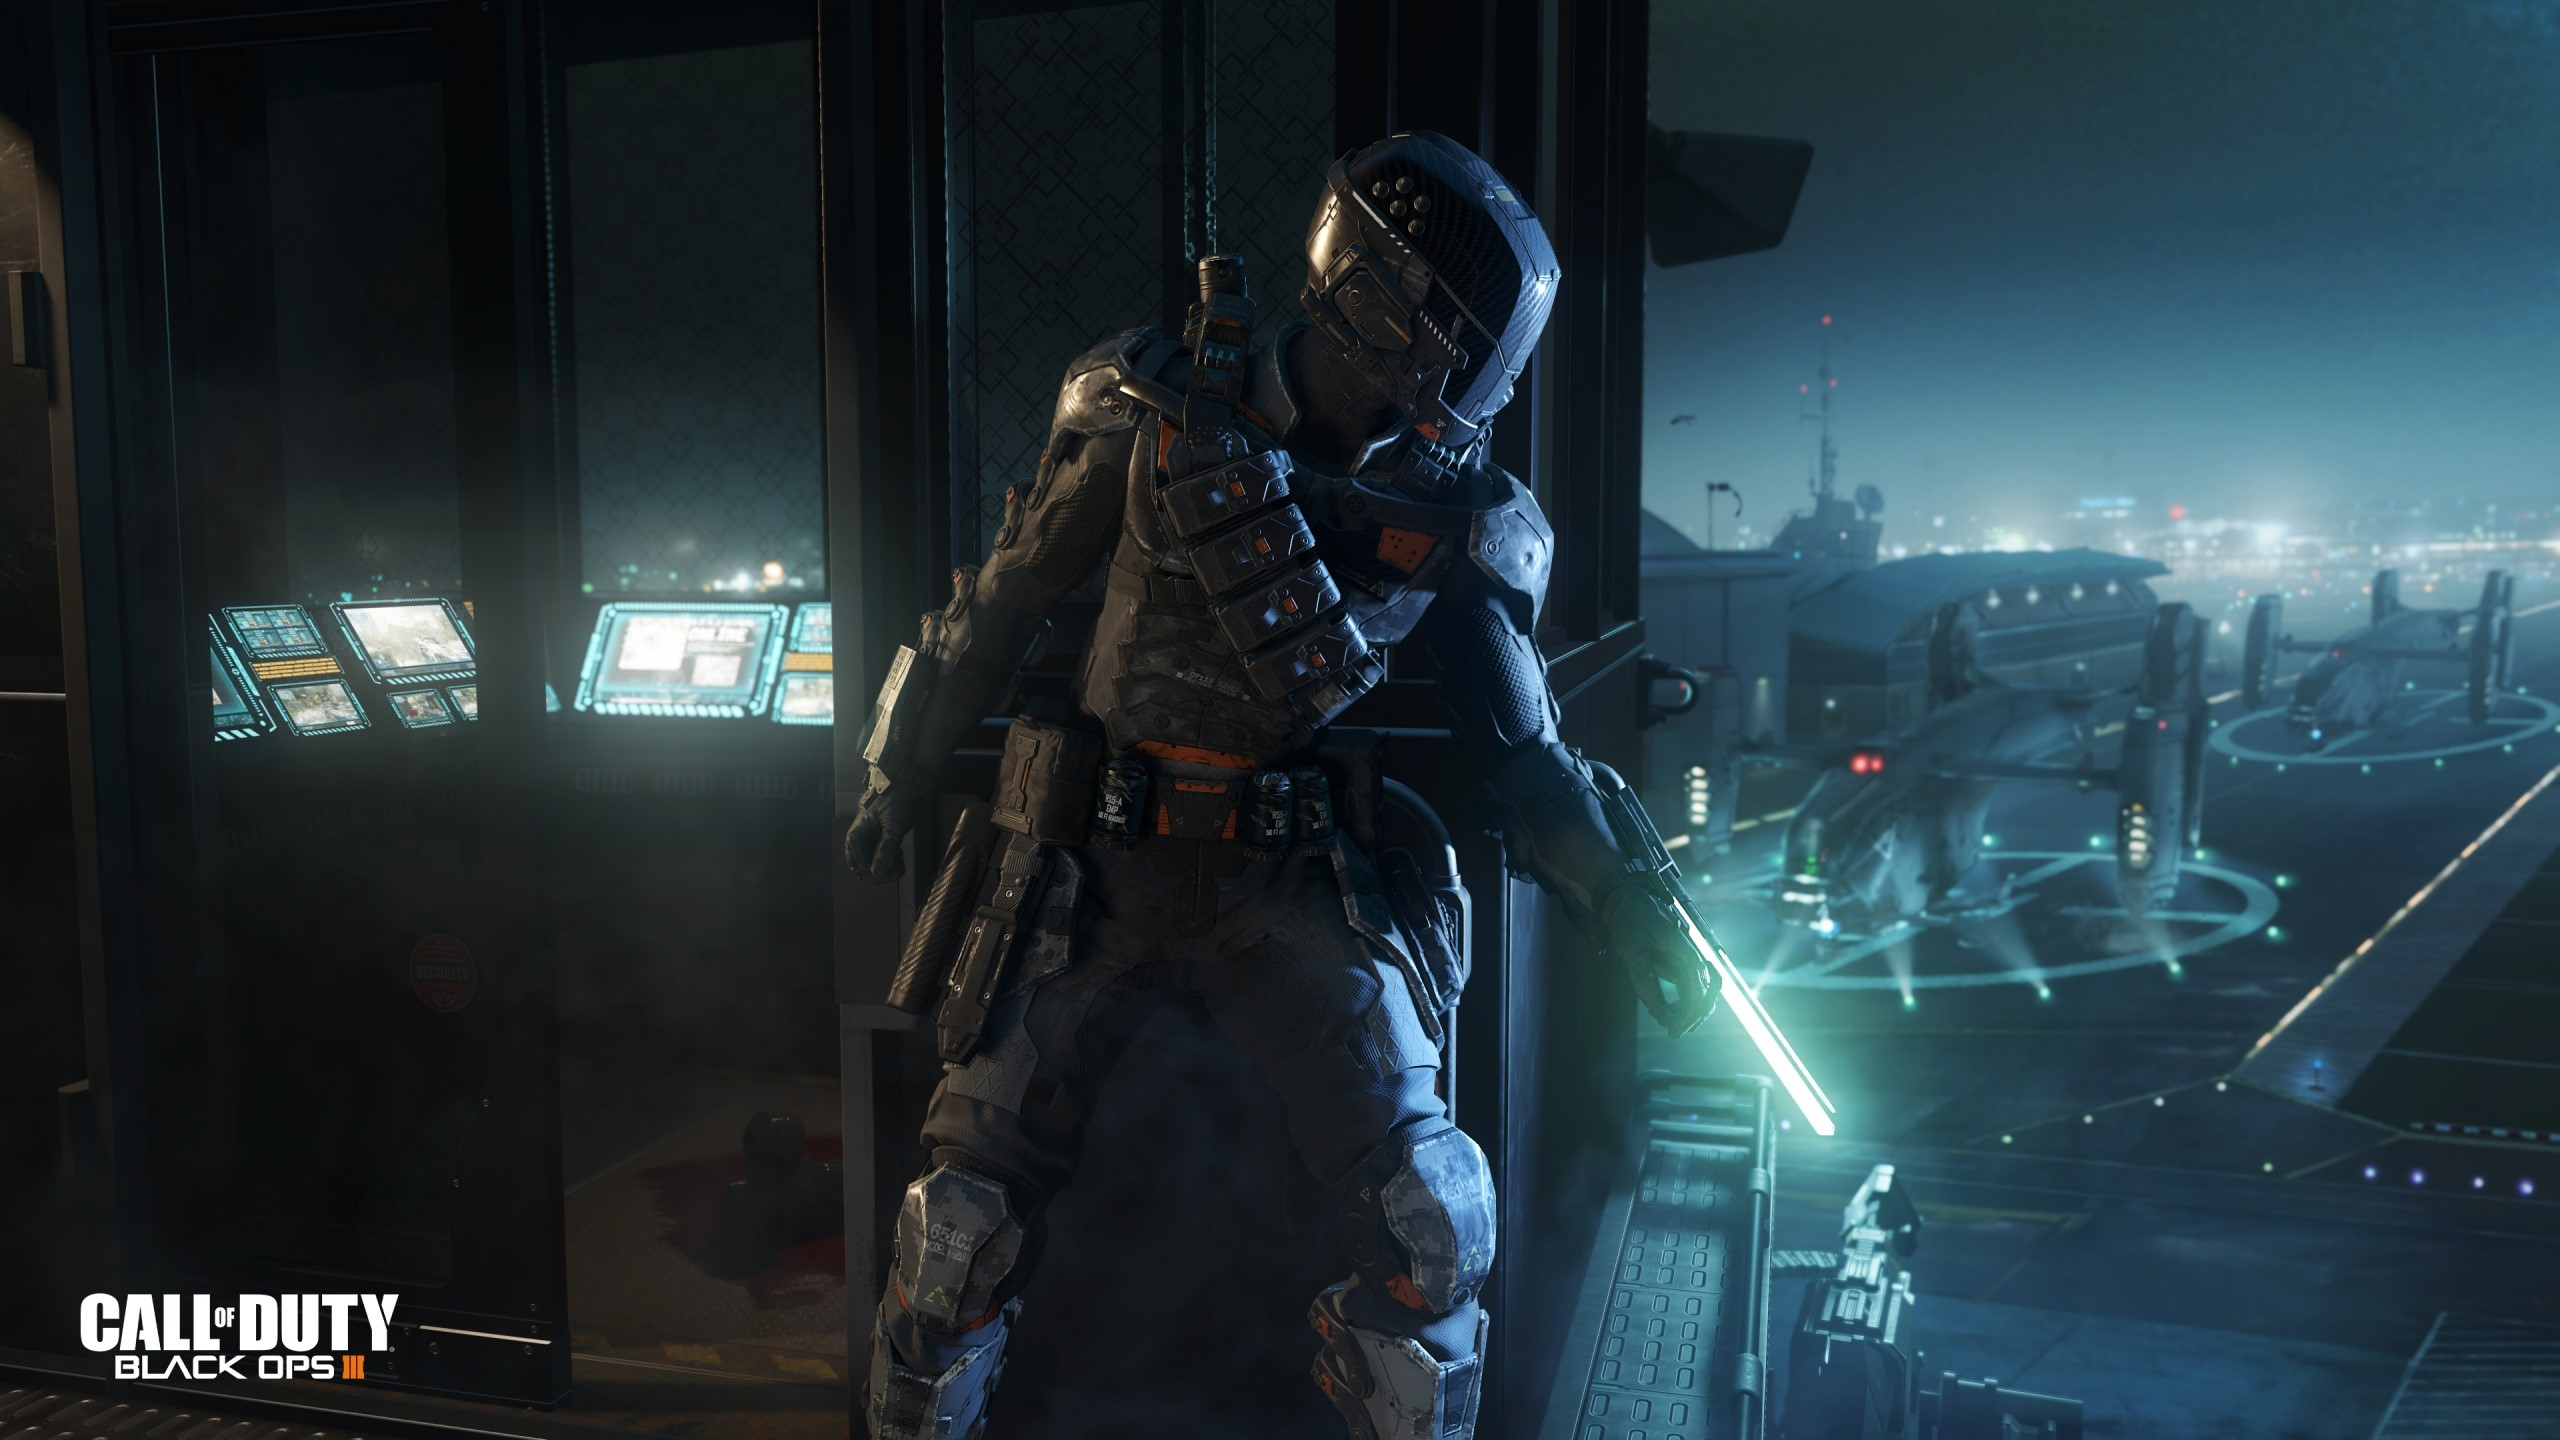 Fondos de pantalla Spectre de Call Of Duty Black Ops 3